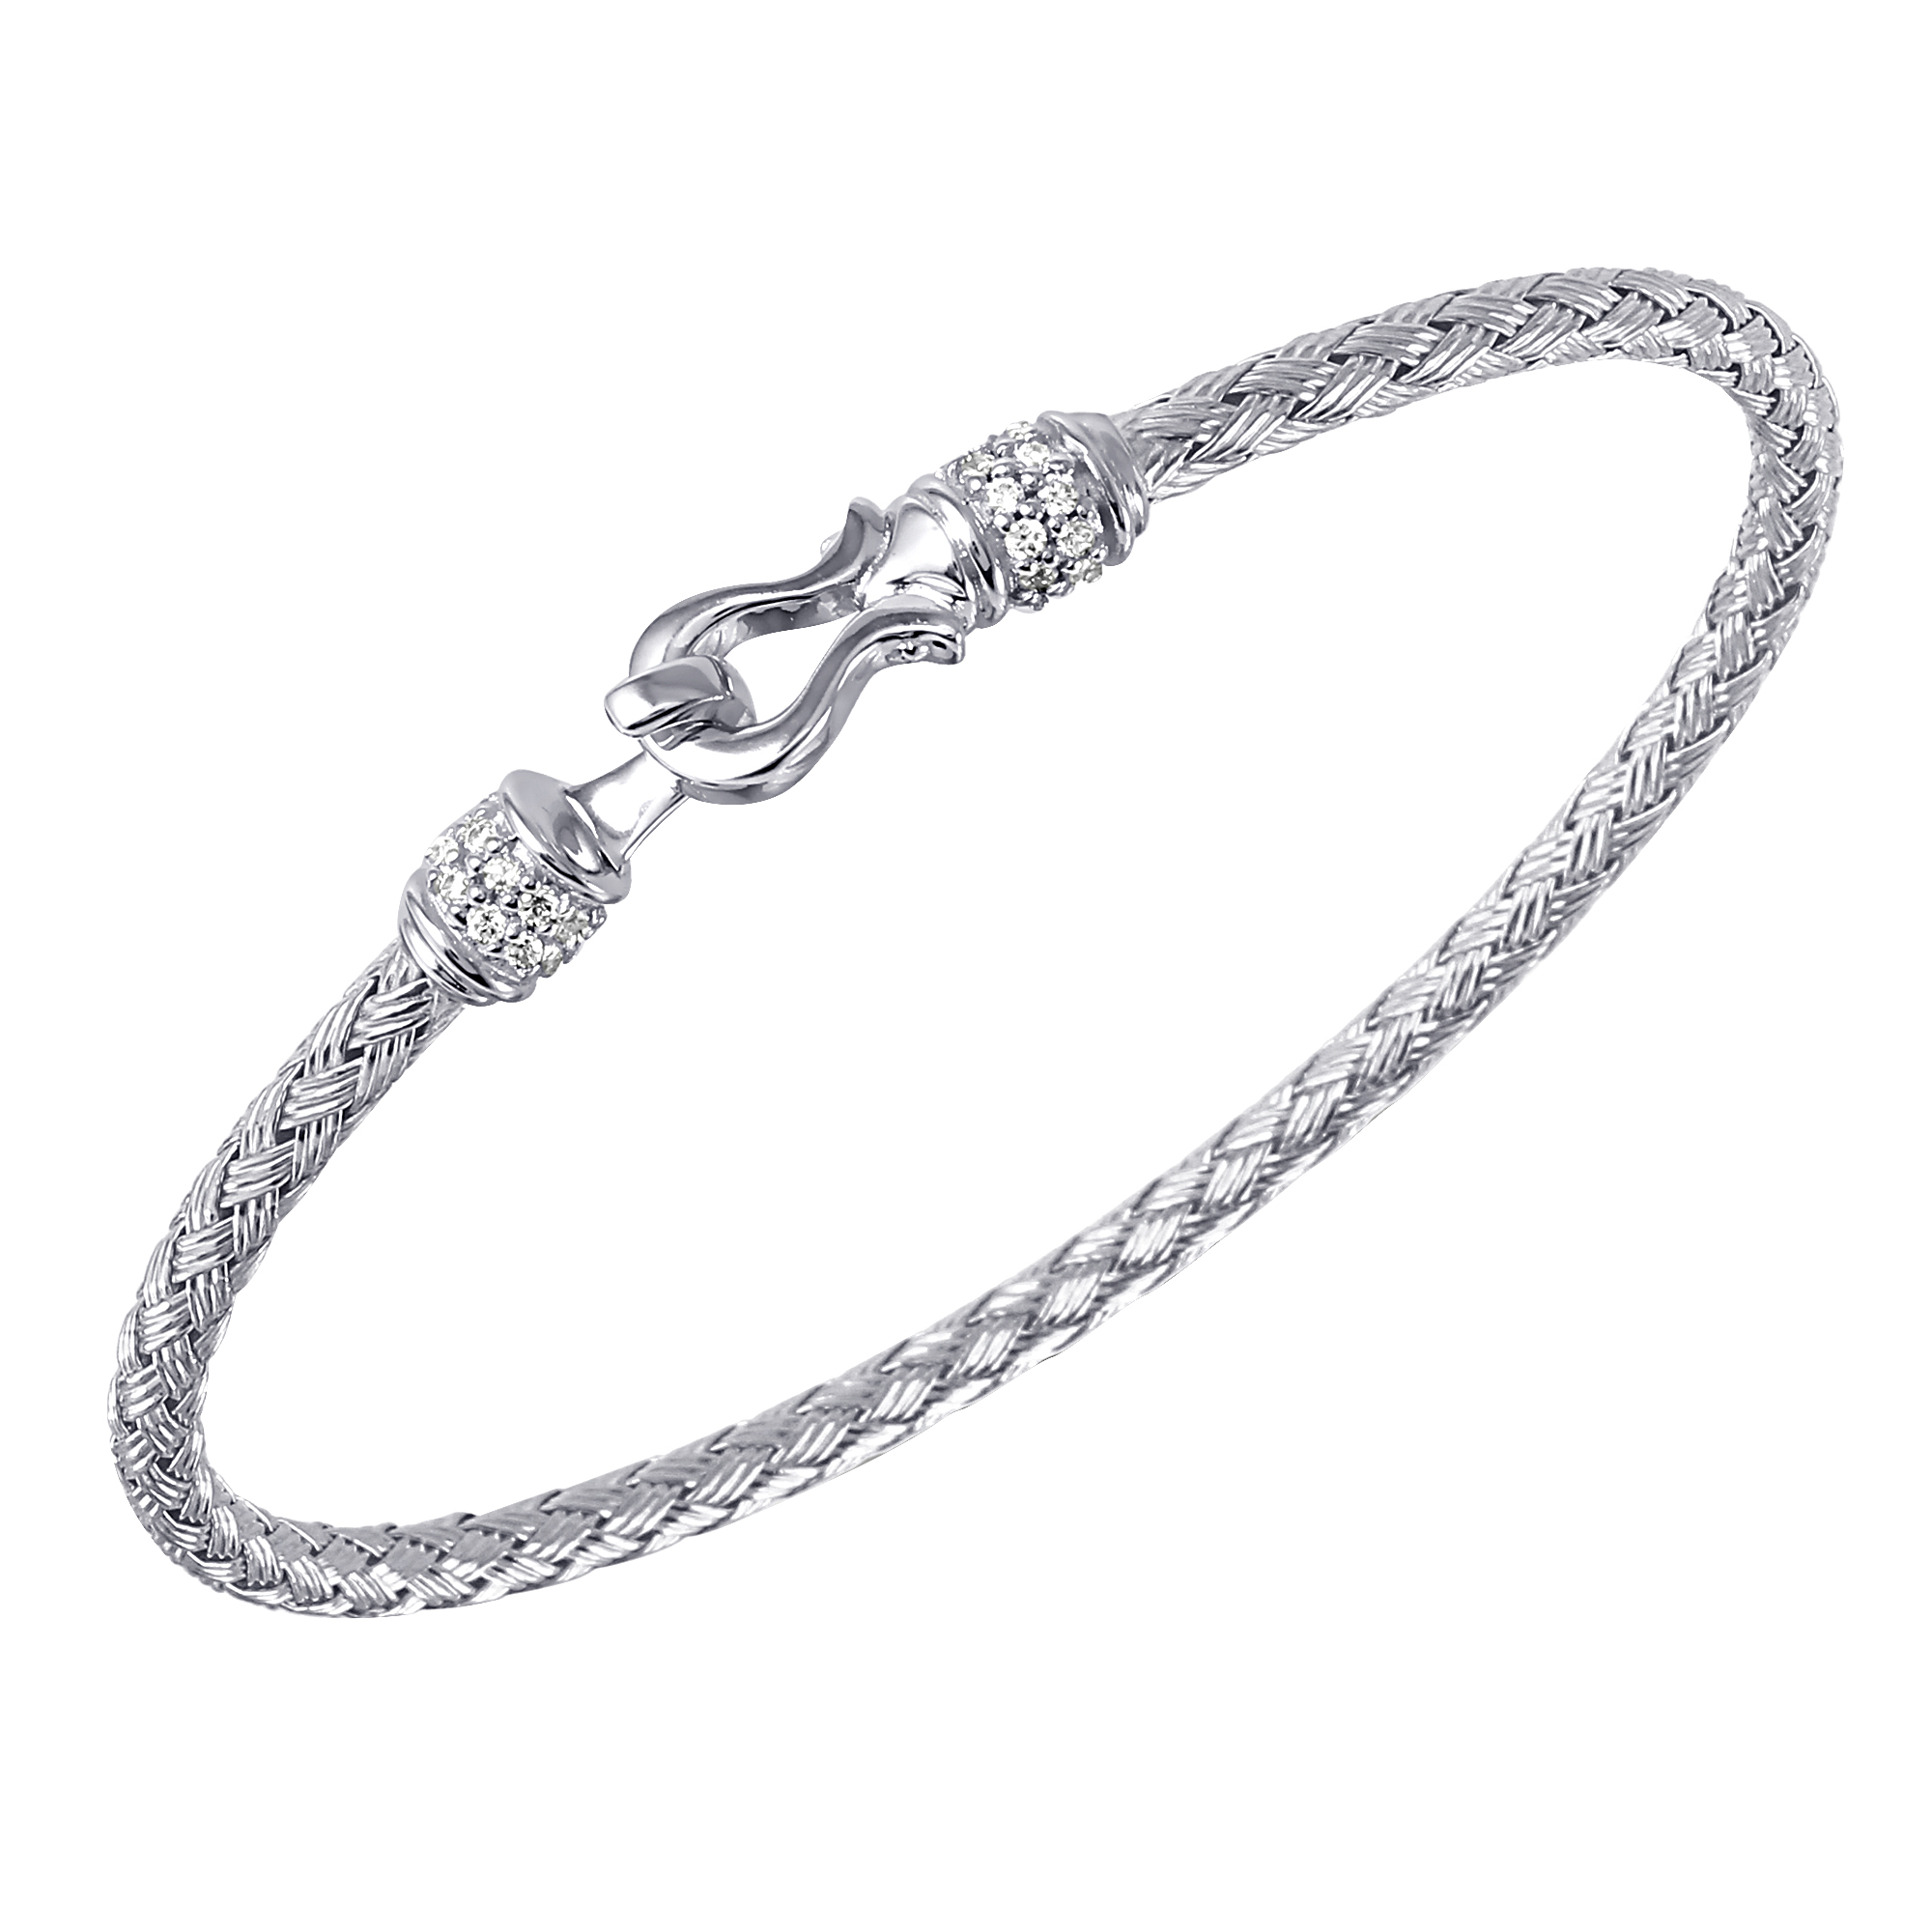 CHARLES GARNIER - Sterling Silver and CZ Harp Cuff Bangle